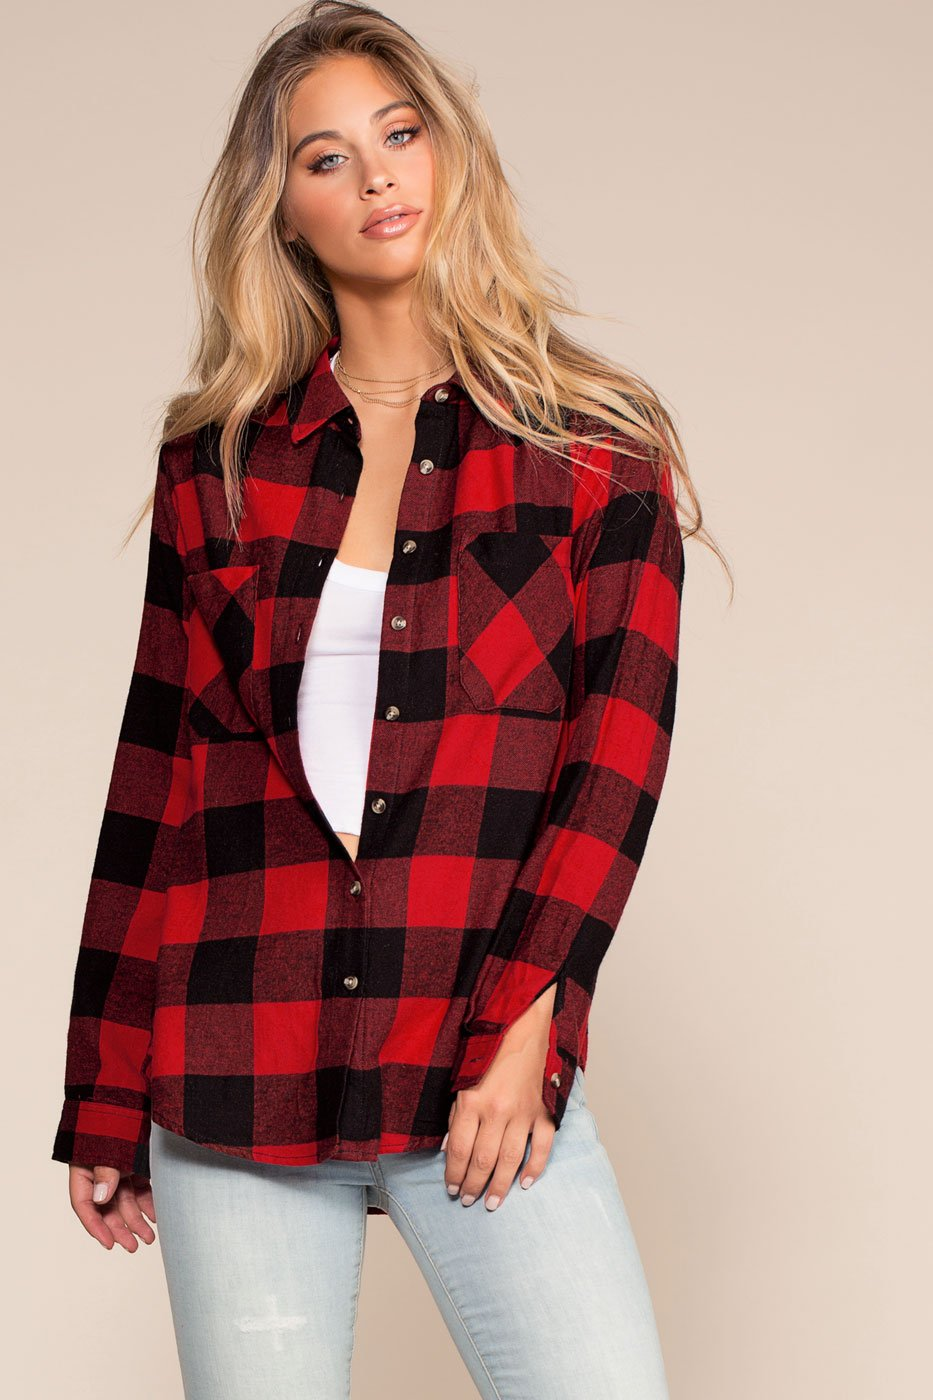 Tops - Ace Flannel Top - Red